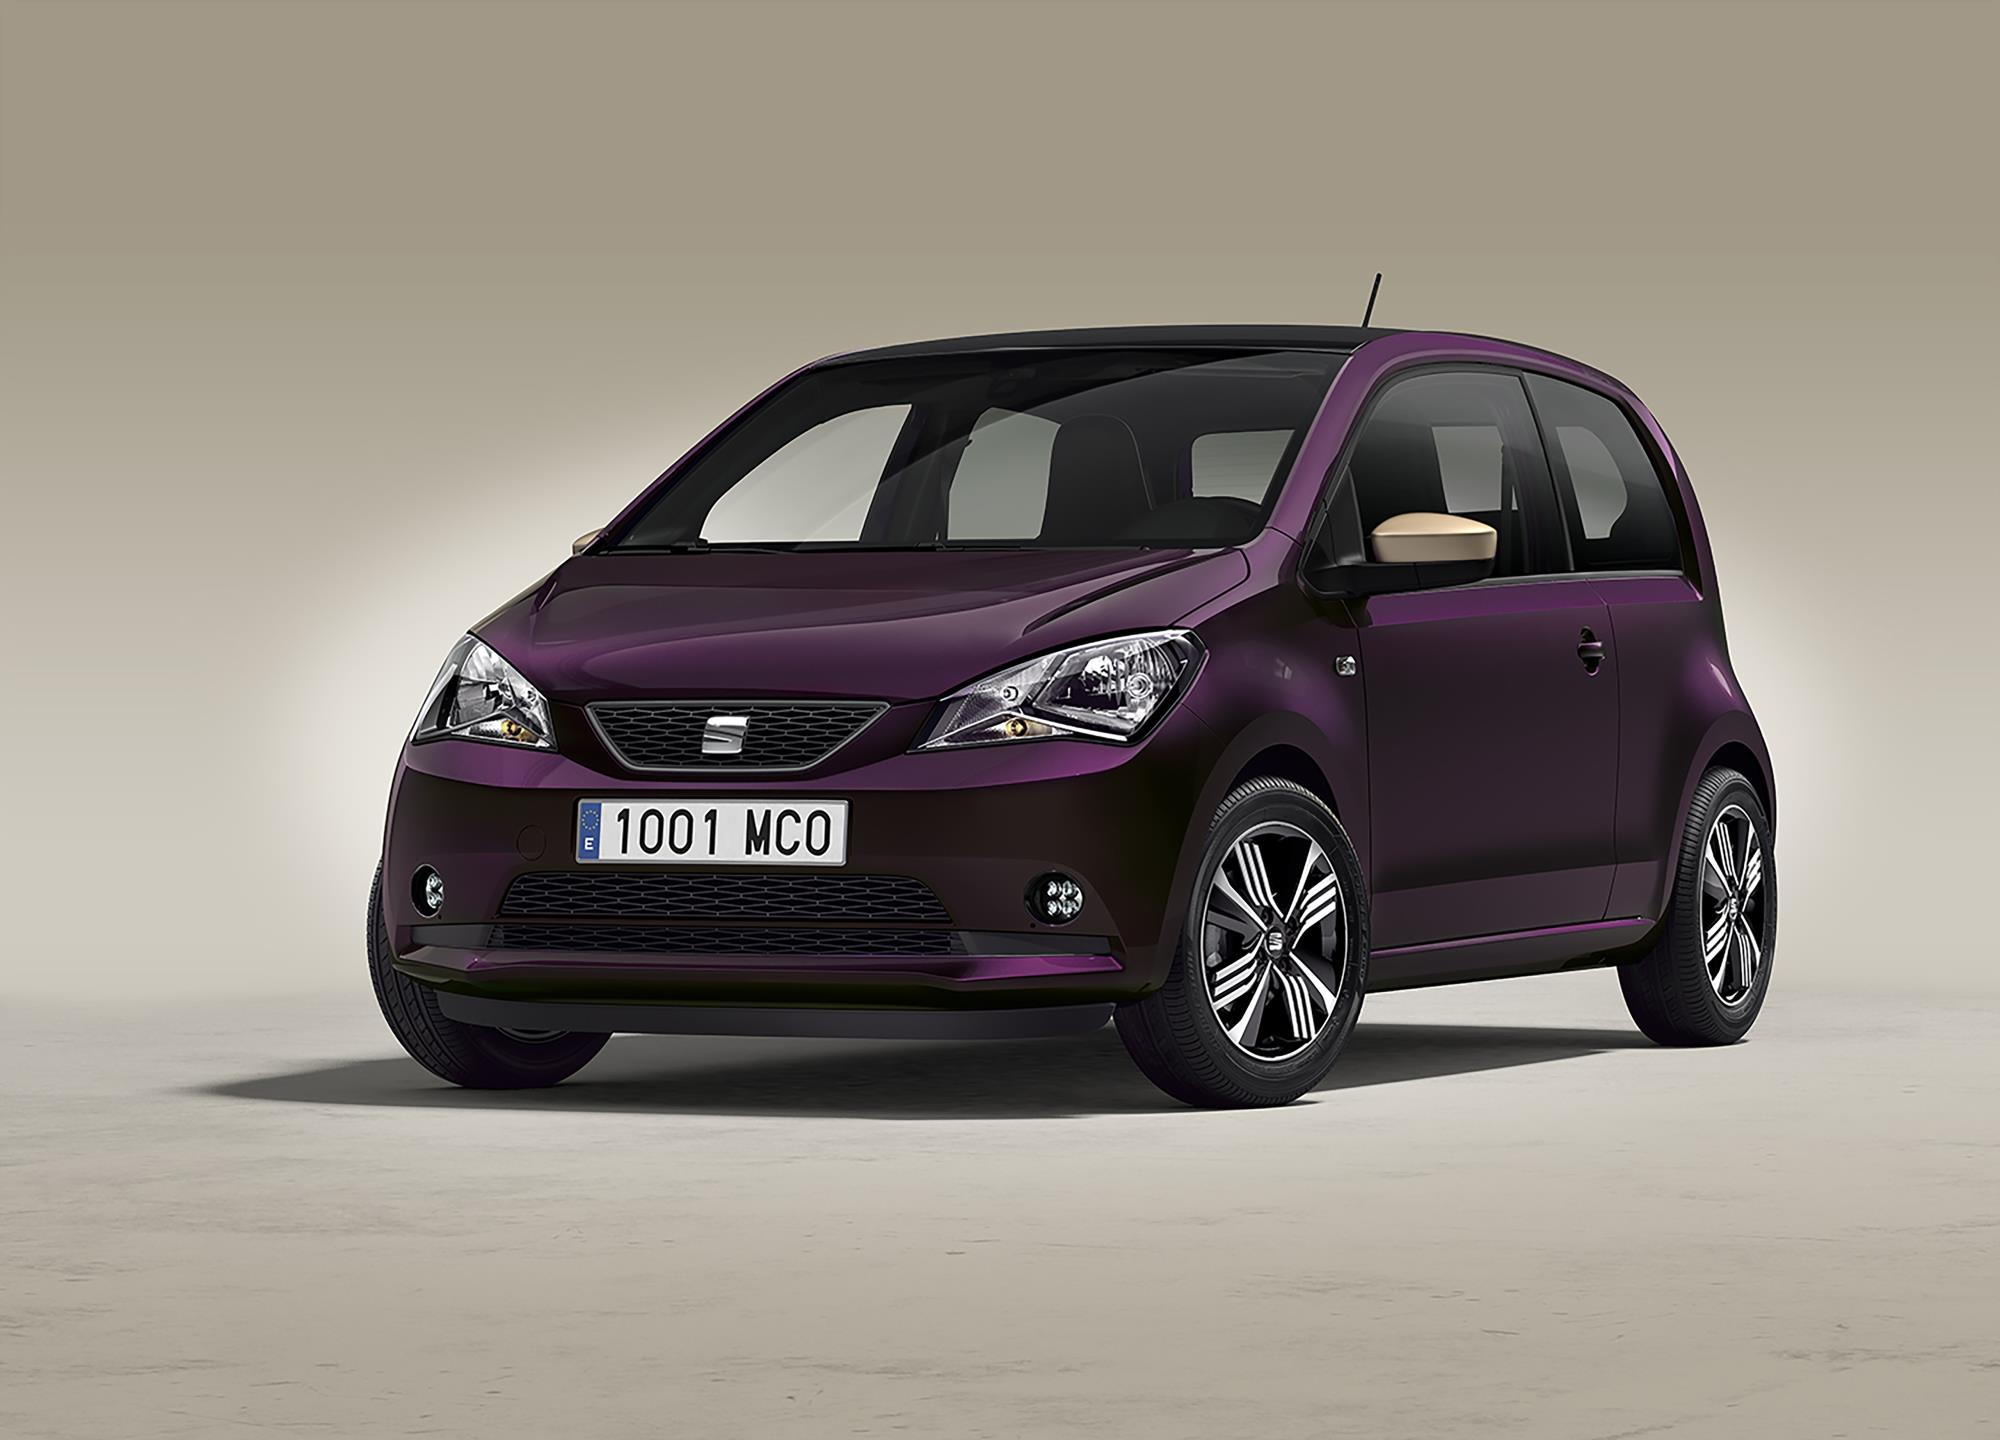 Seat and Cosmopolitan reveal their car for designed women